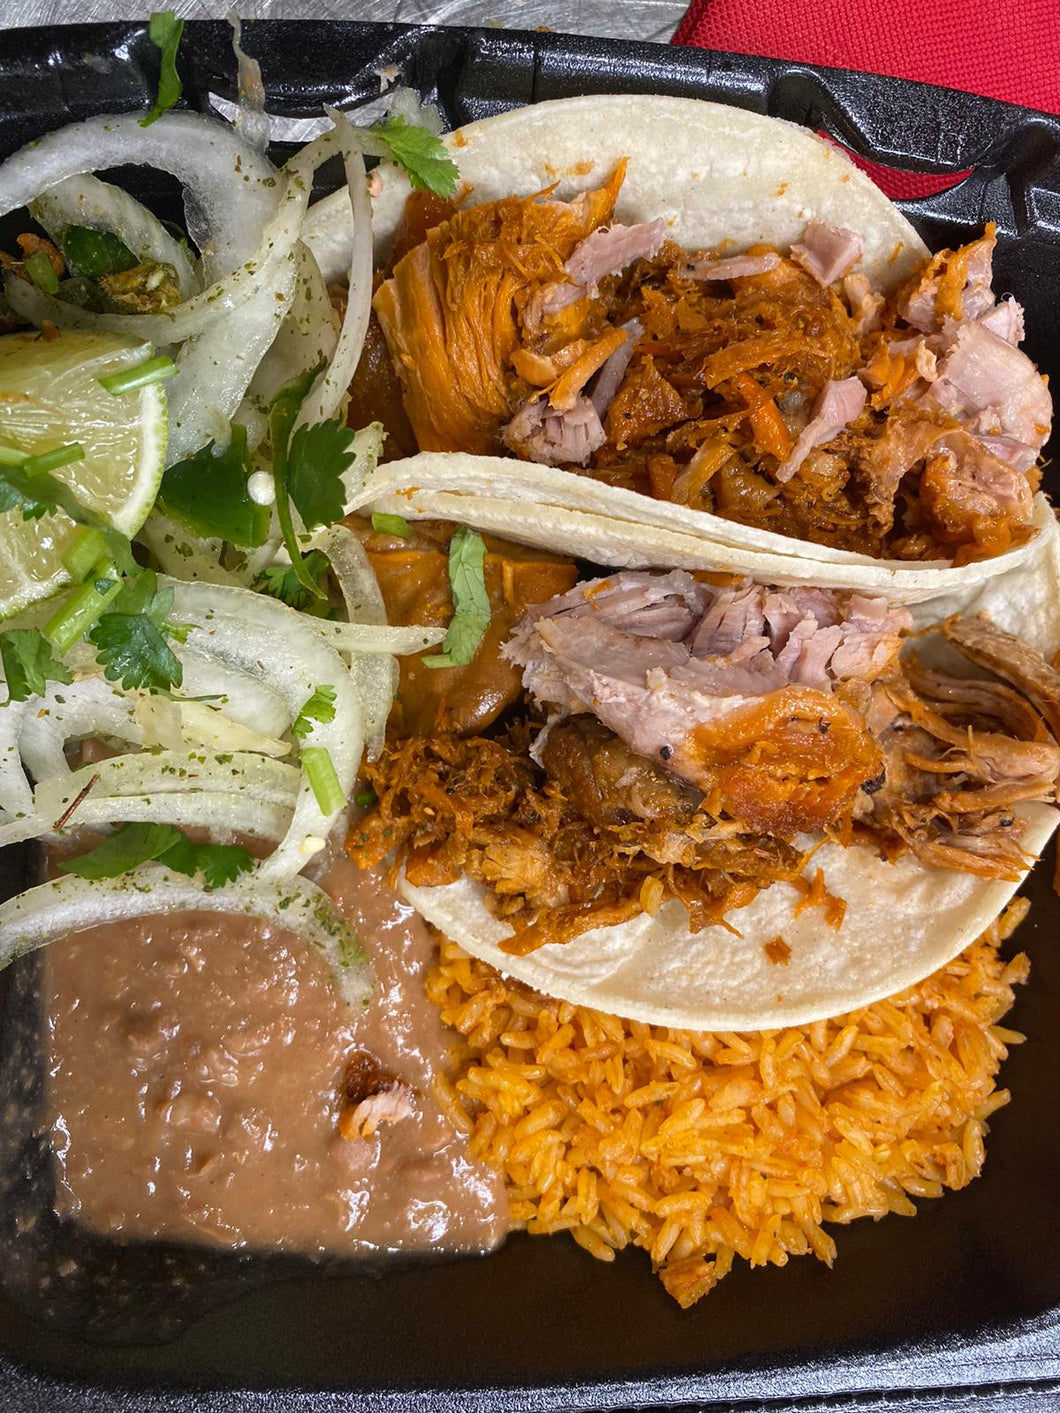 HOLIDAYS MEALS ON THE JOB ( COMBOS TO GO) READY TO EAT ON THE SPOT! MINIMO 10 PERSONAS ASTA 500 PERSONAS - Carnitas Uruapan